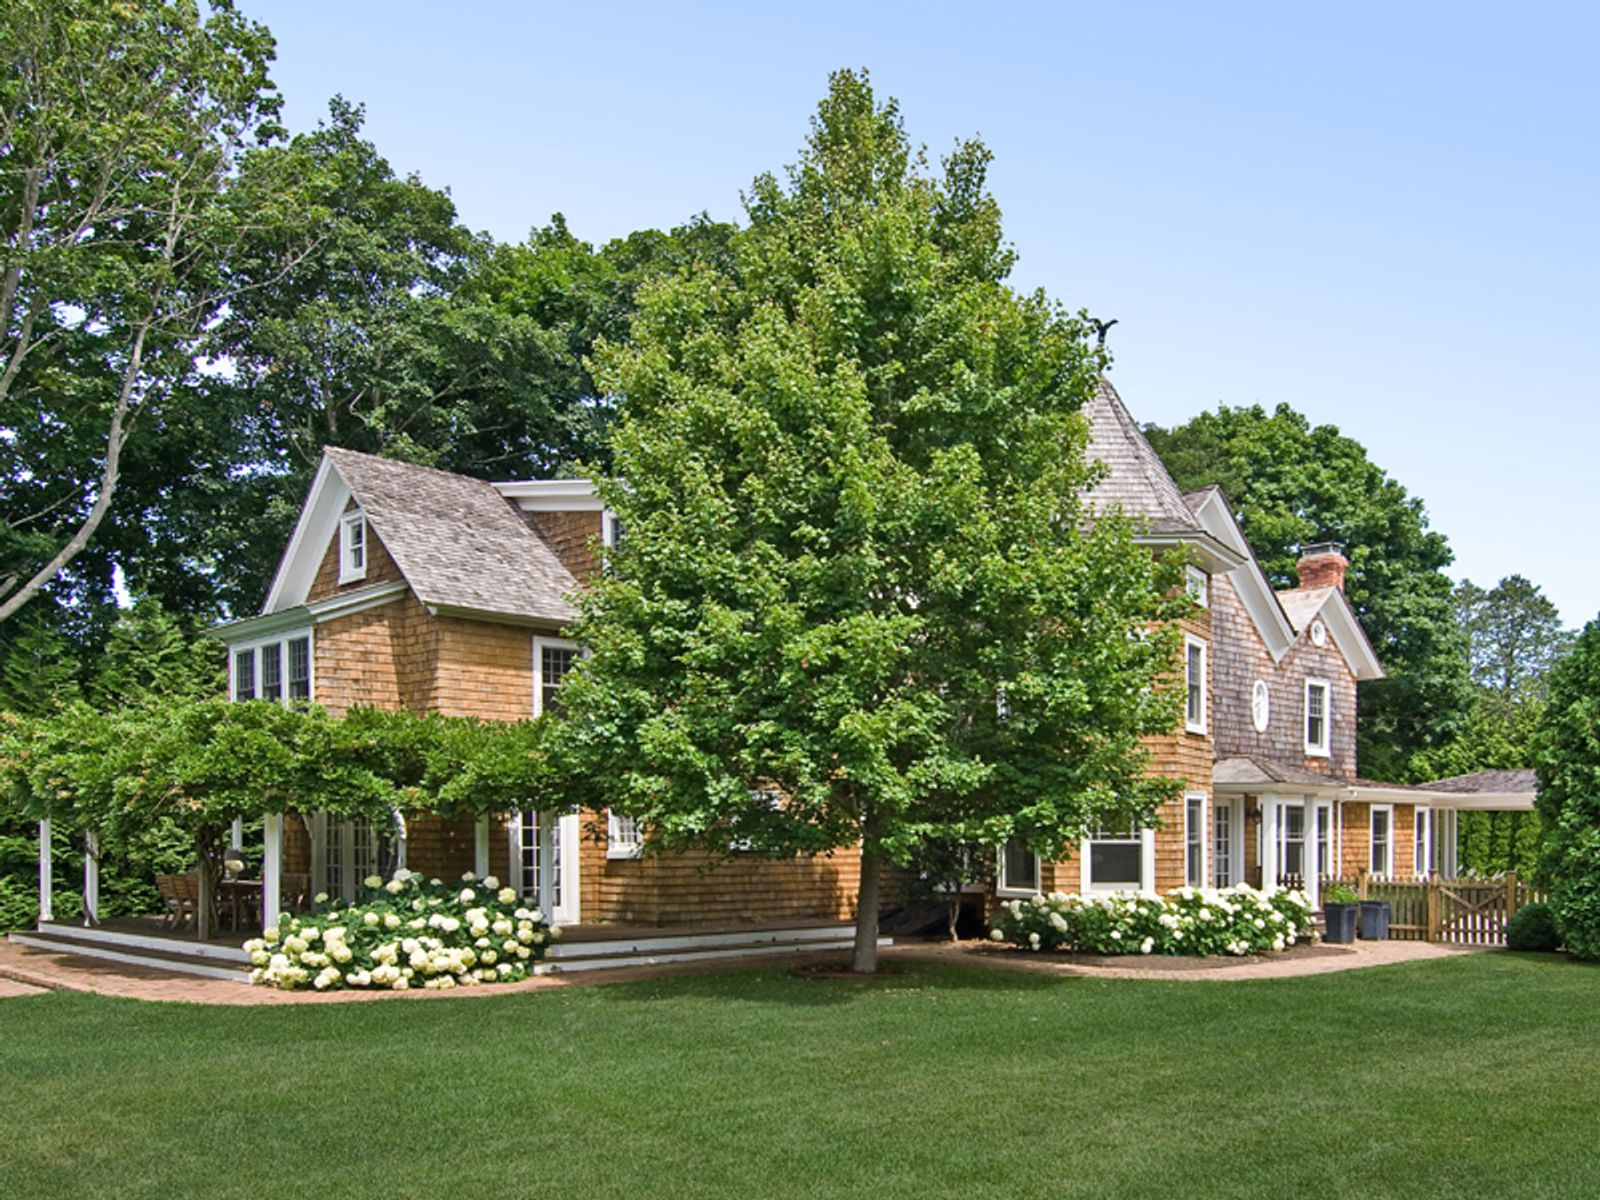 Village Classic with Guest Cottage, Southampton NY Single Family Home - Hamptons Real Estate